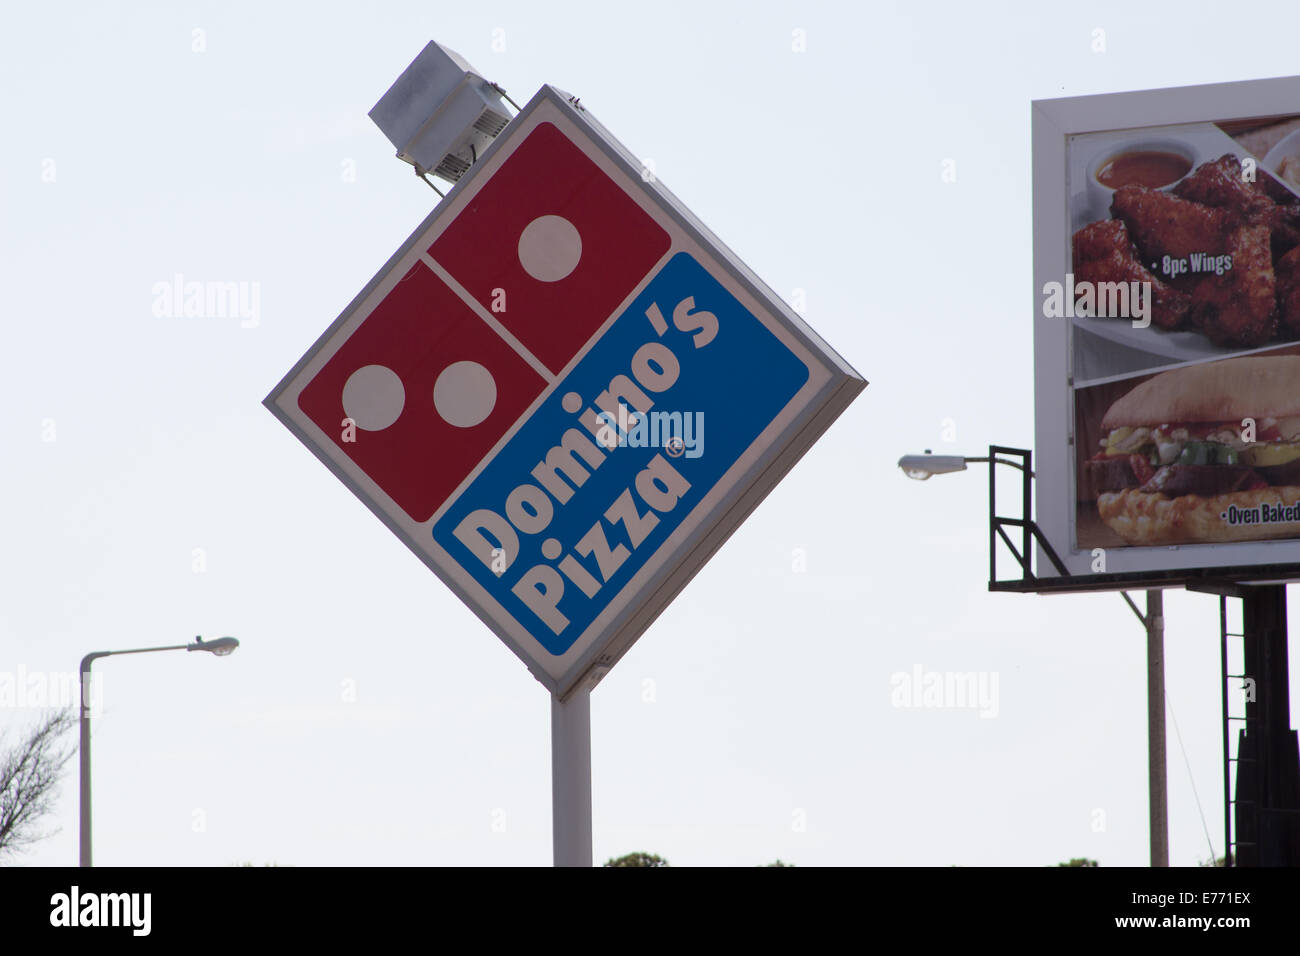 Dominos Pizza Sign Stock Photos & Dominos Pizza Sign Stock Images ...